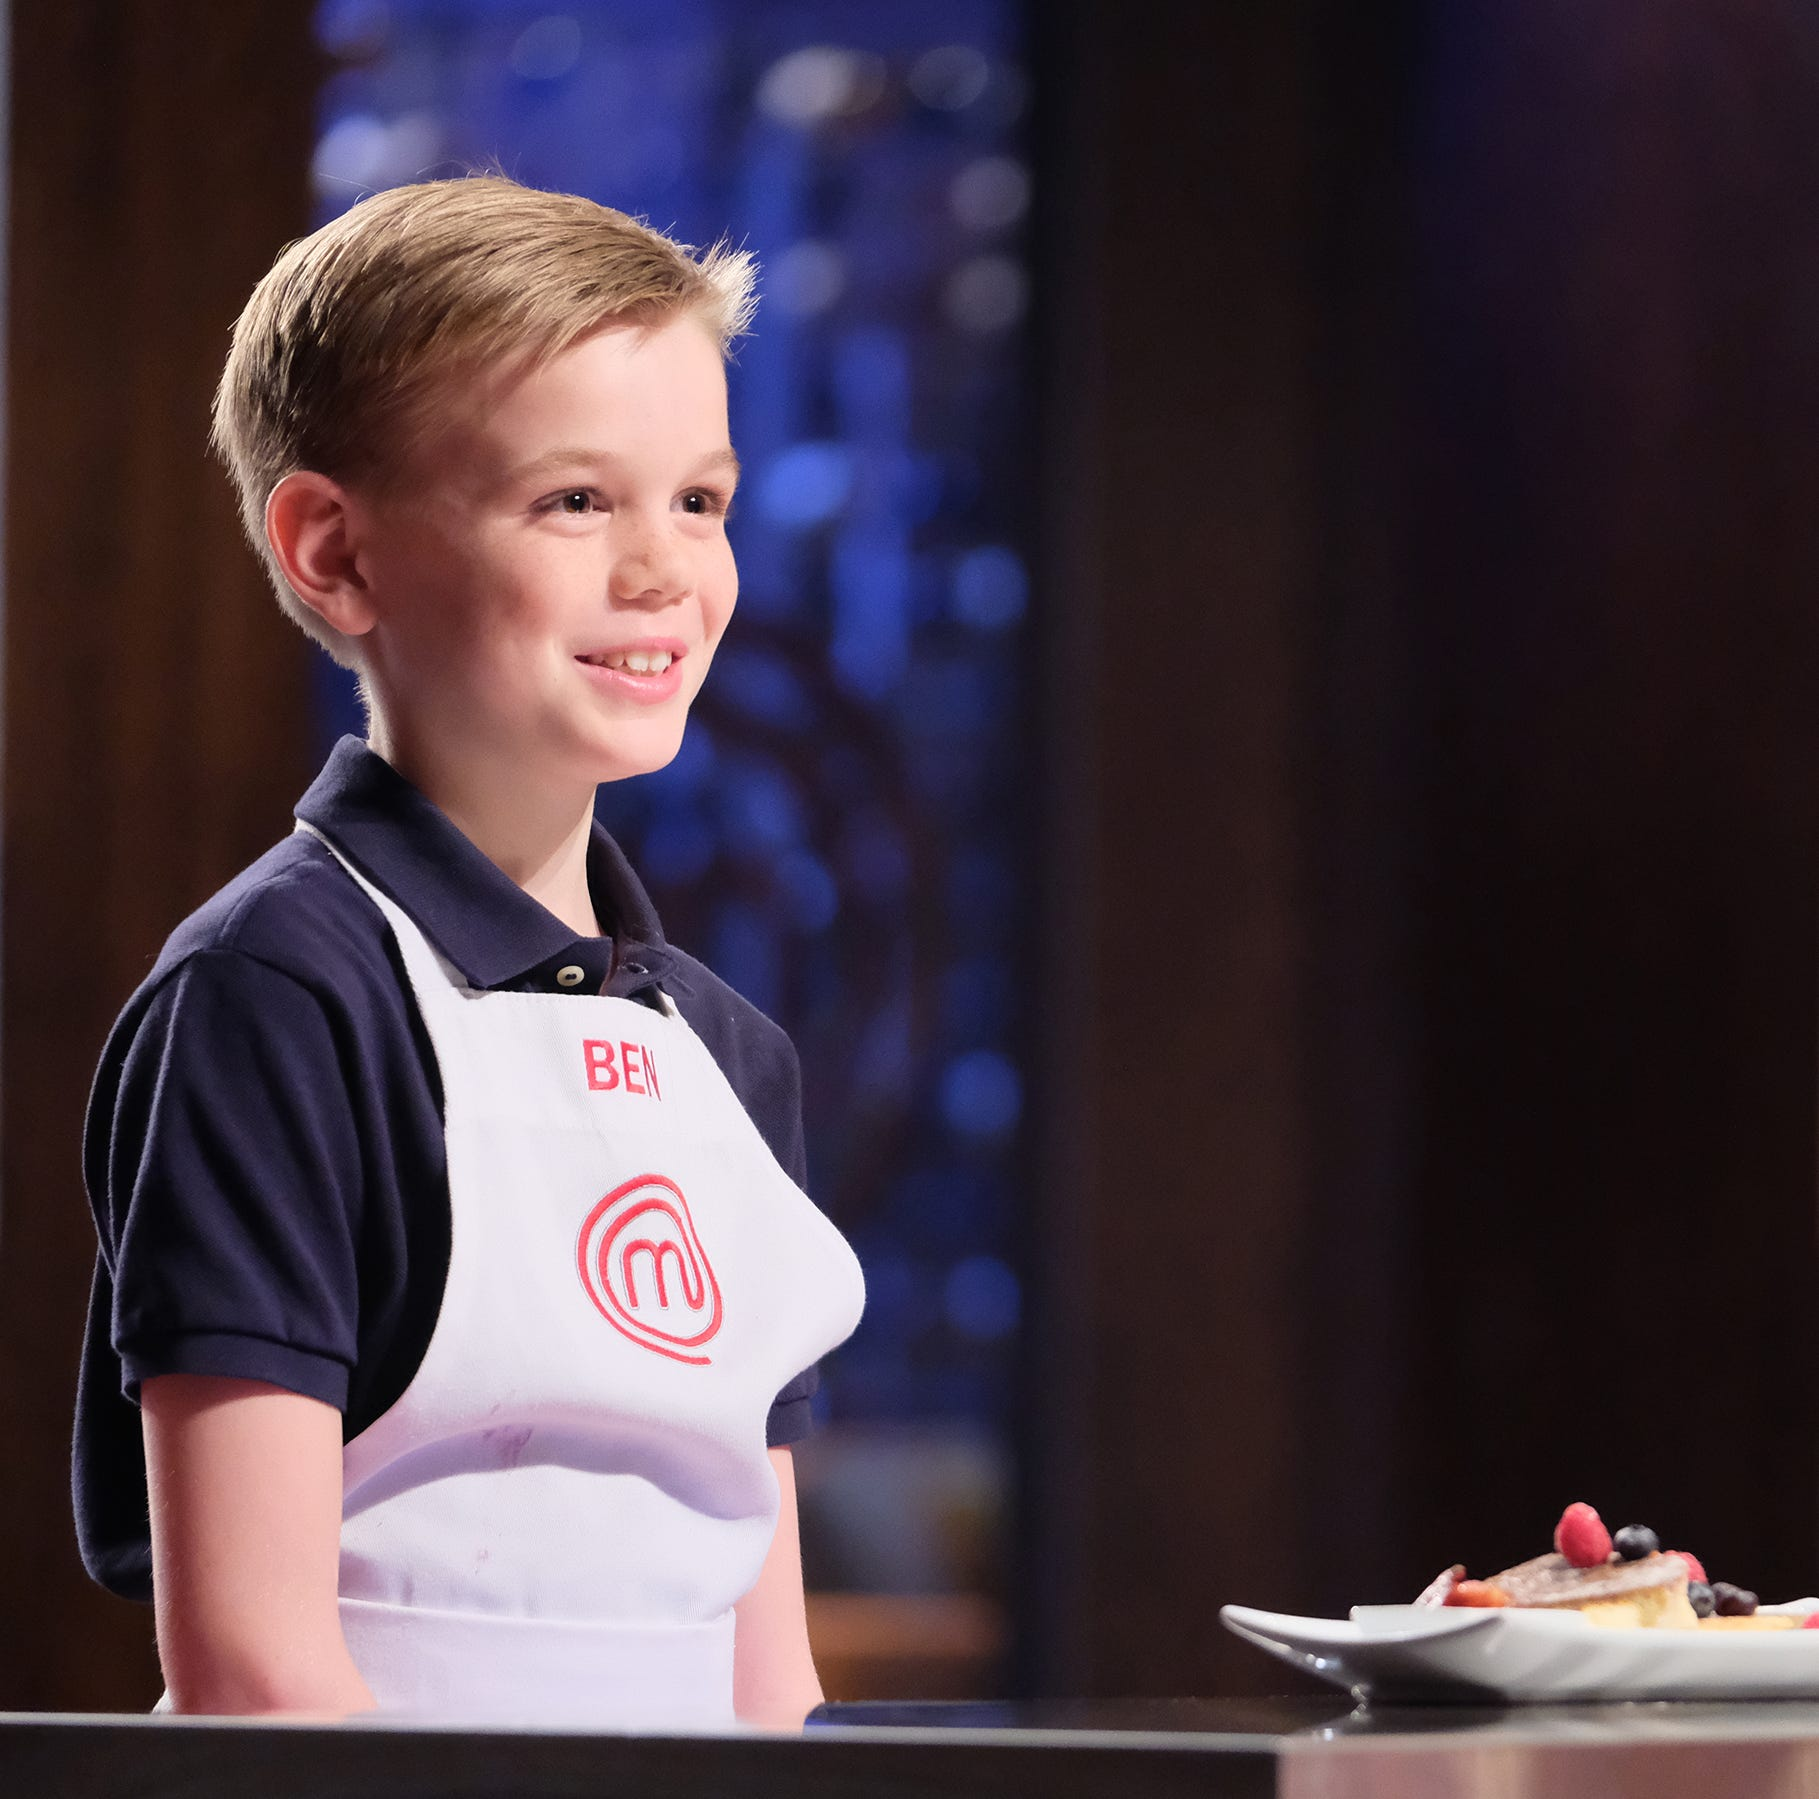 11-year-old boy from Morristown competes on MasterChef Junior